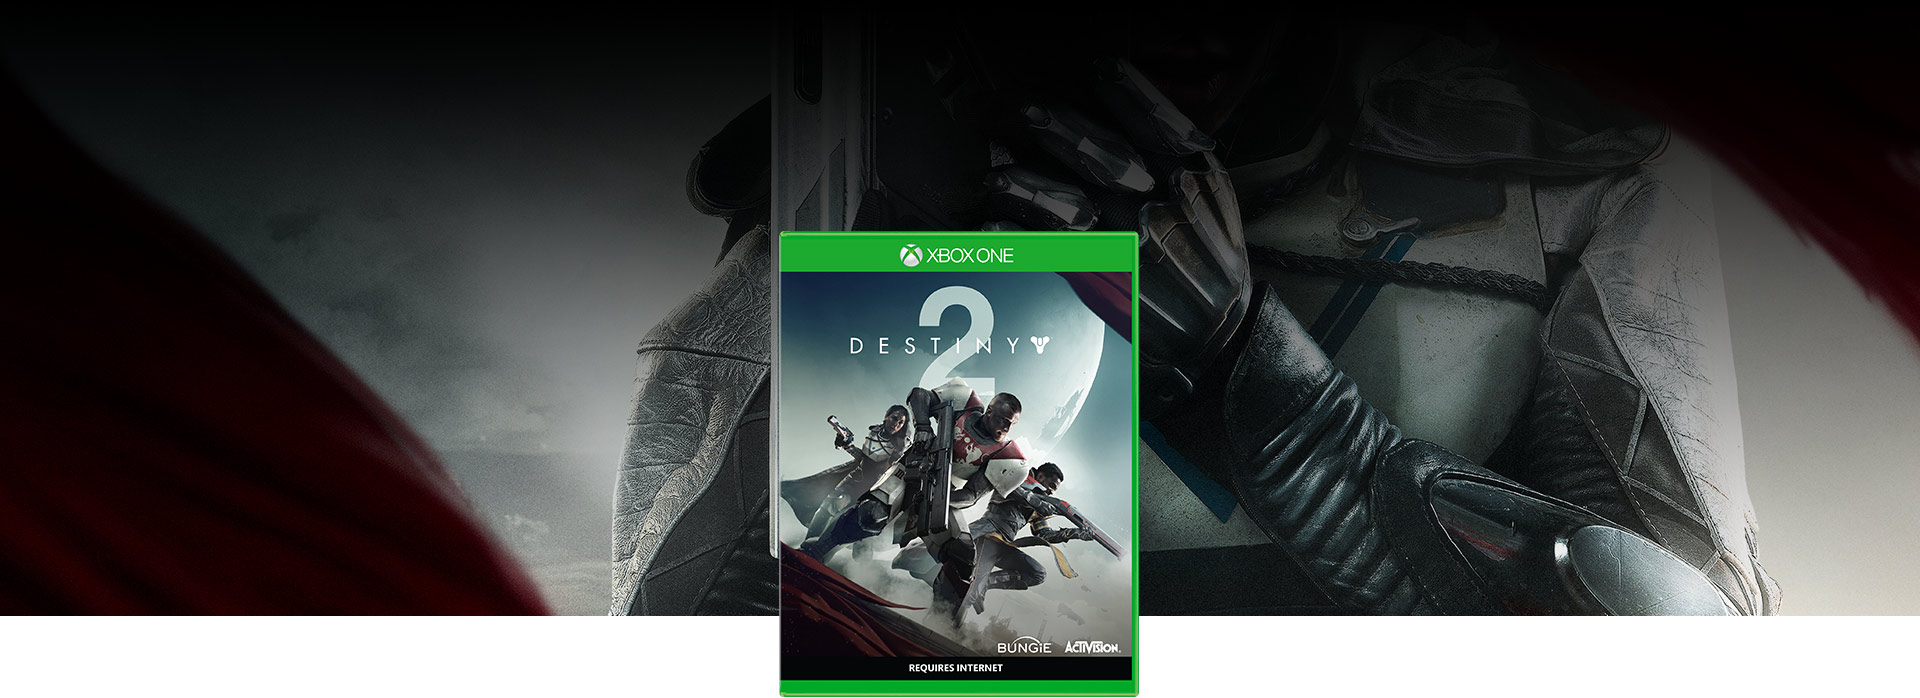 DEstiny 2 box shot